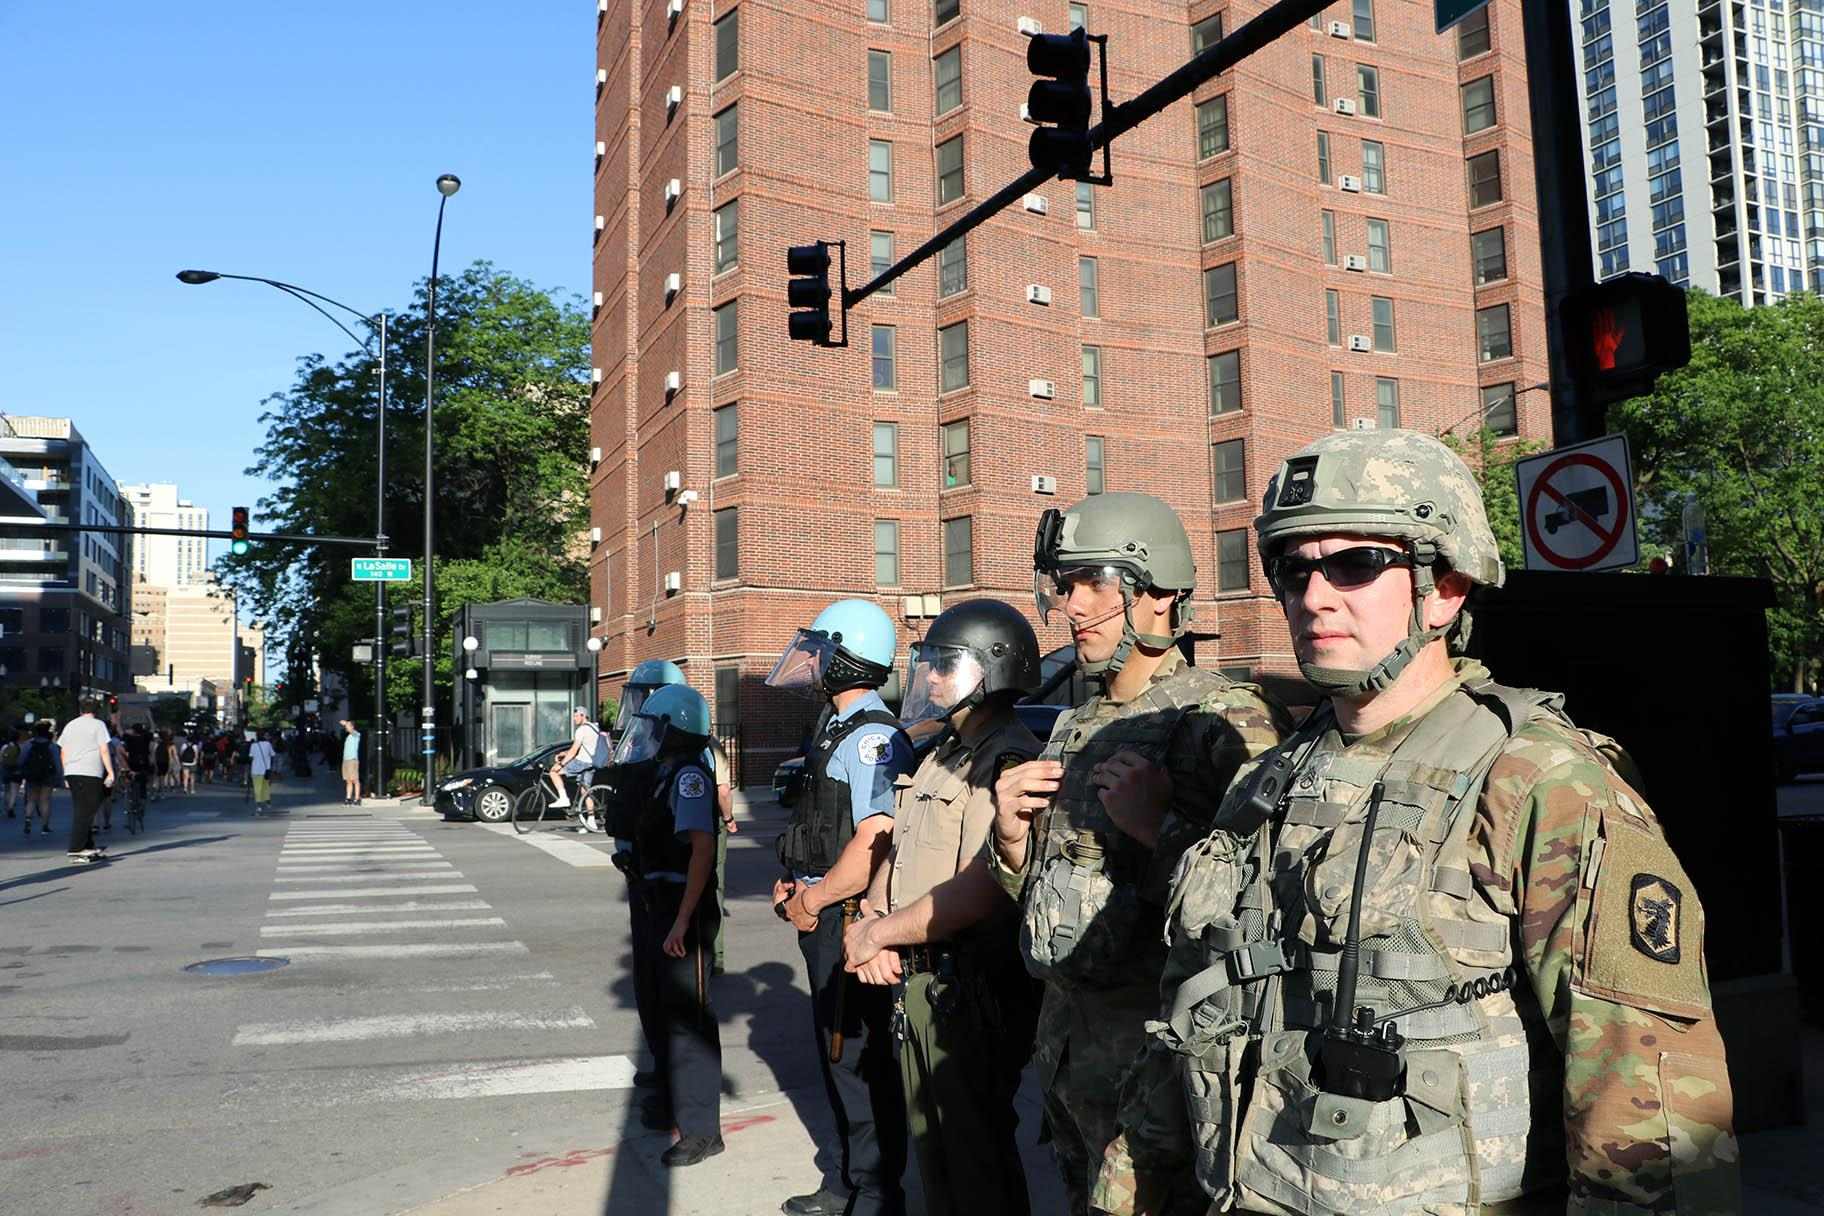 Illinois National Guard officers watch a protest in Old Town on June 6, 2020, one of many in the city and across the U.S. sparked by the death of George Floyd while in Minneapolis police custody. (Evan Garcia / WTTW News)